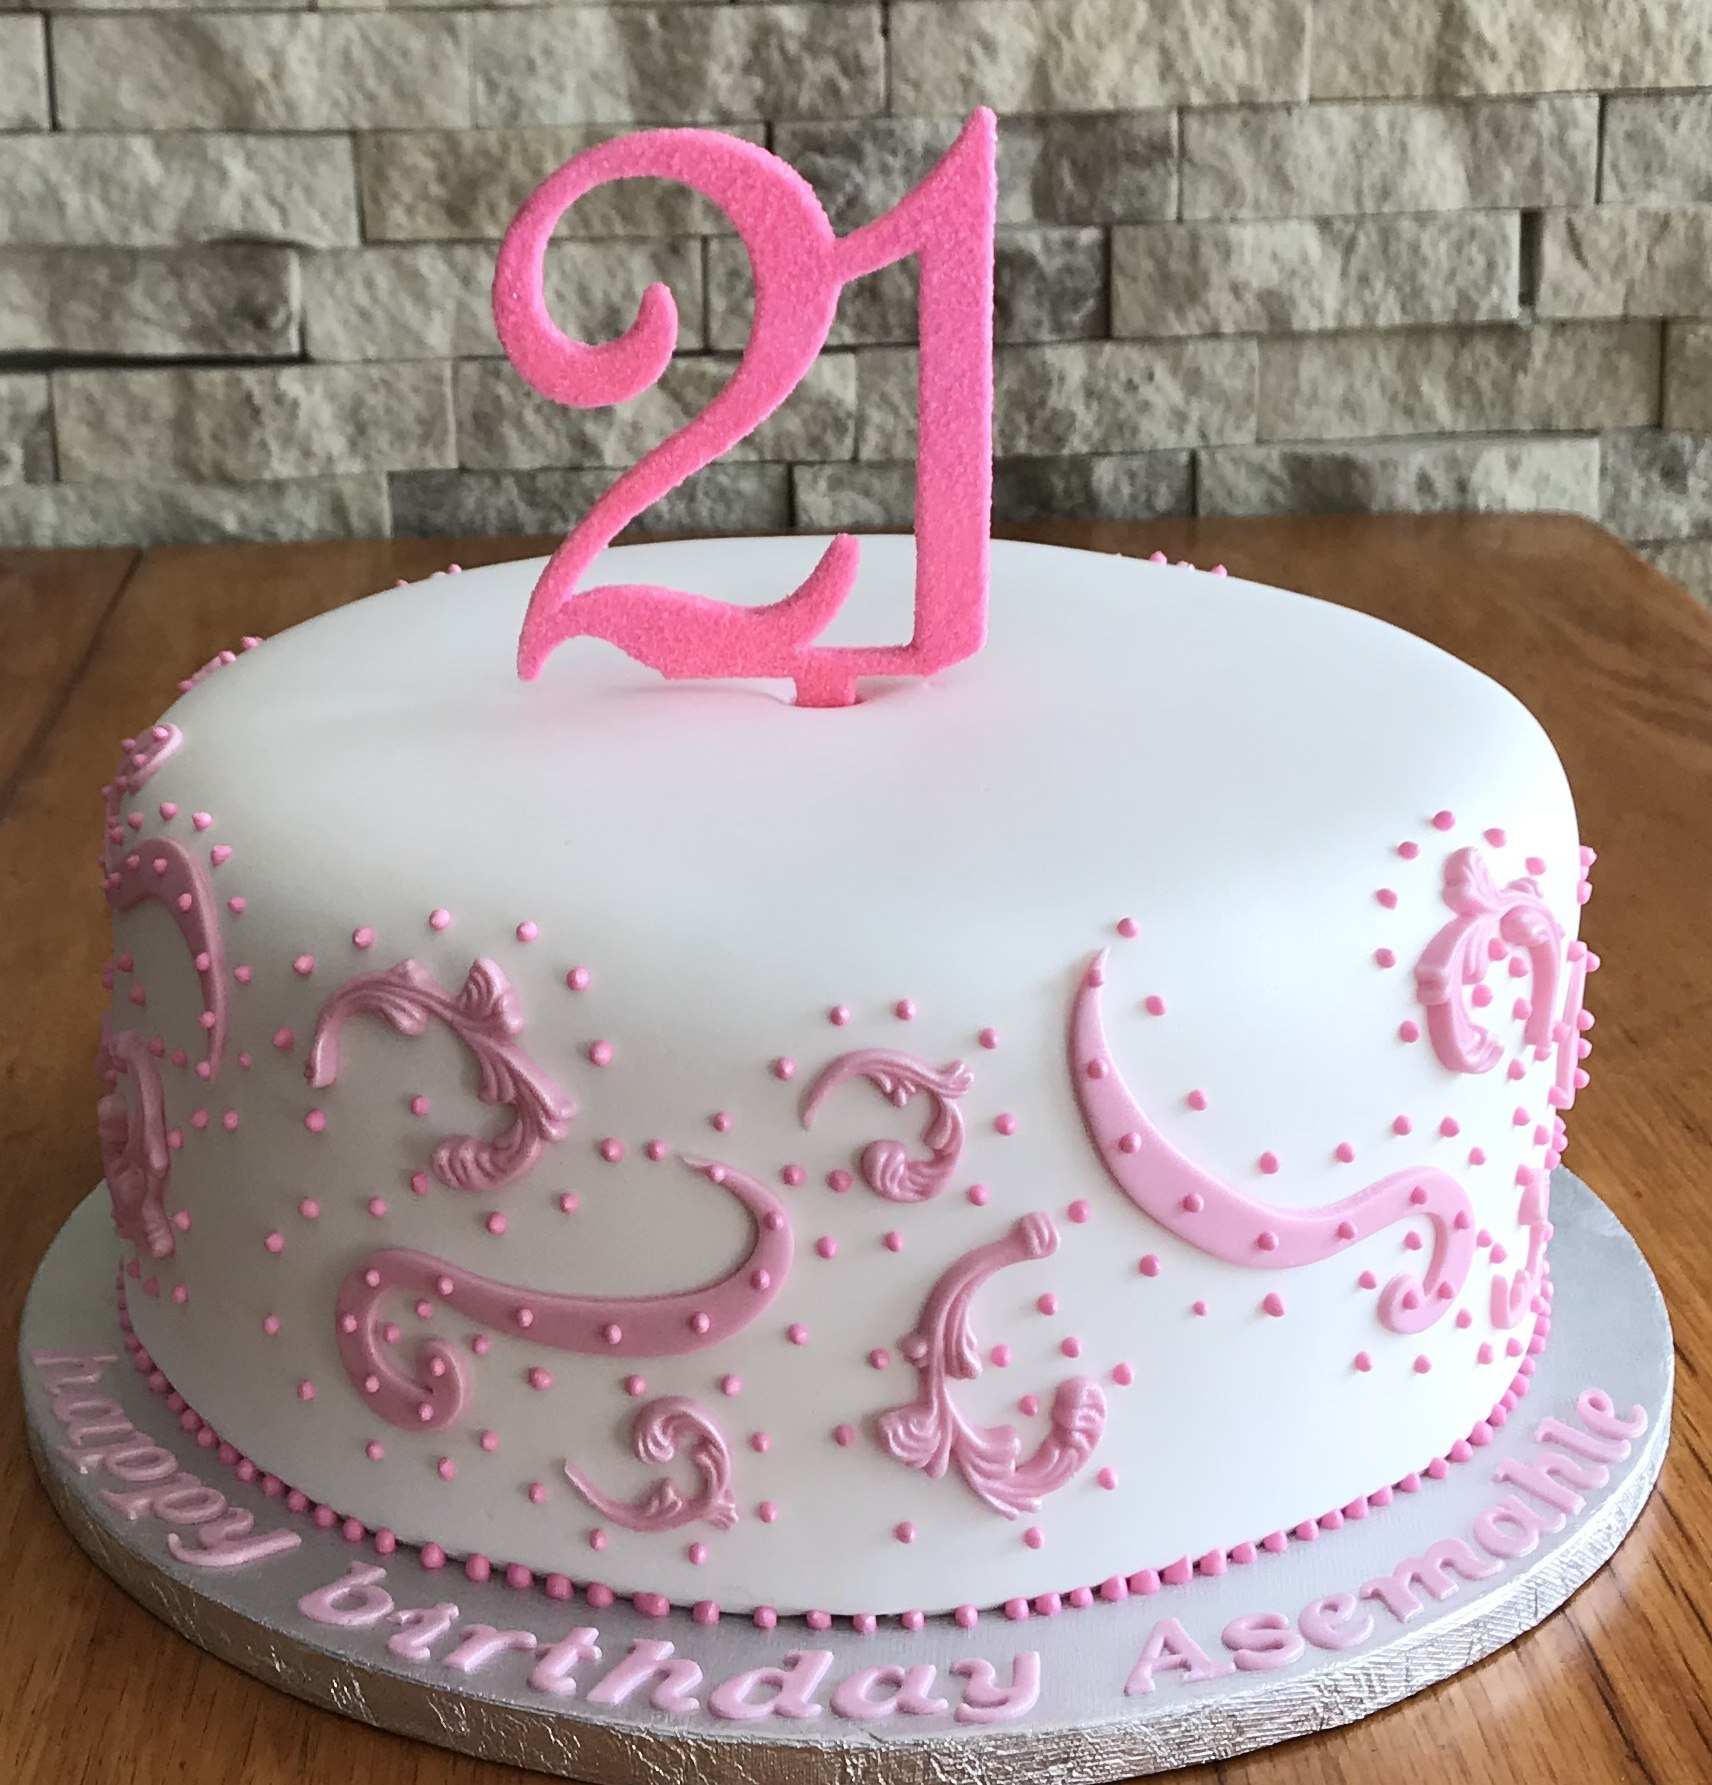 1712 X 1785 In 32 Excellent Photo Of 21 Birthday Cakes